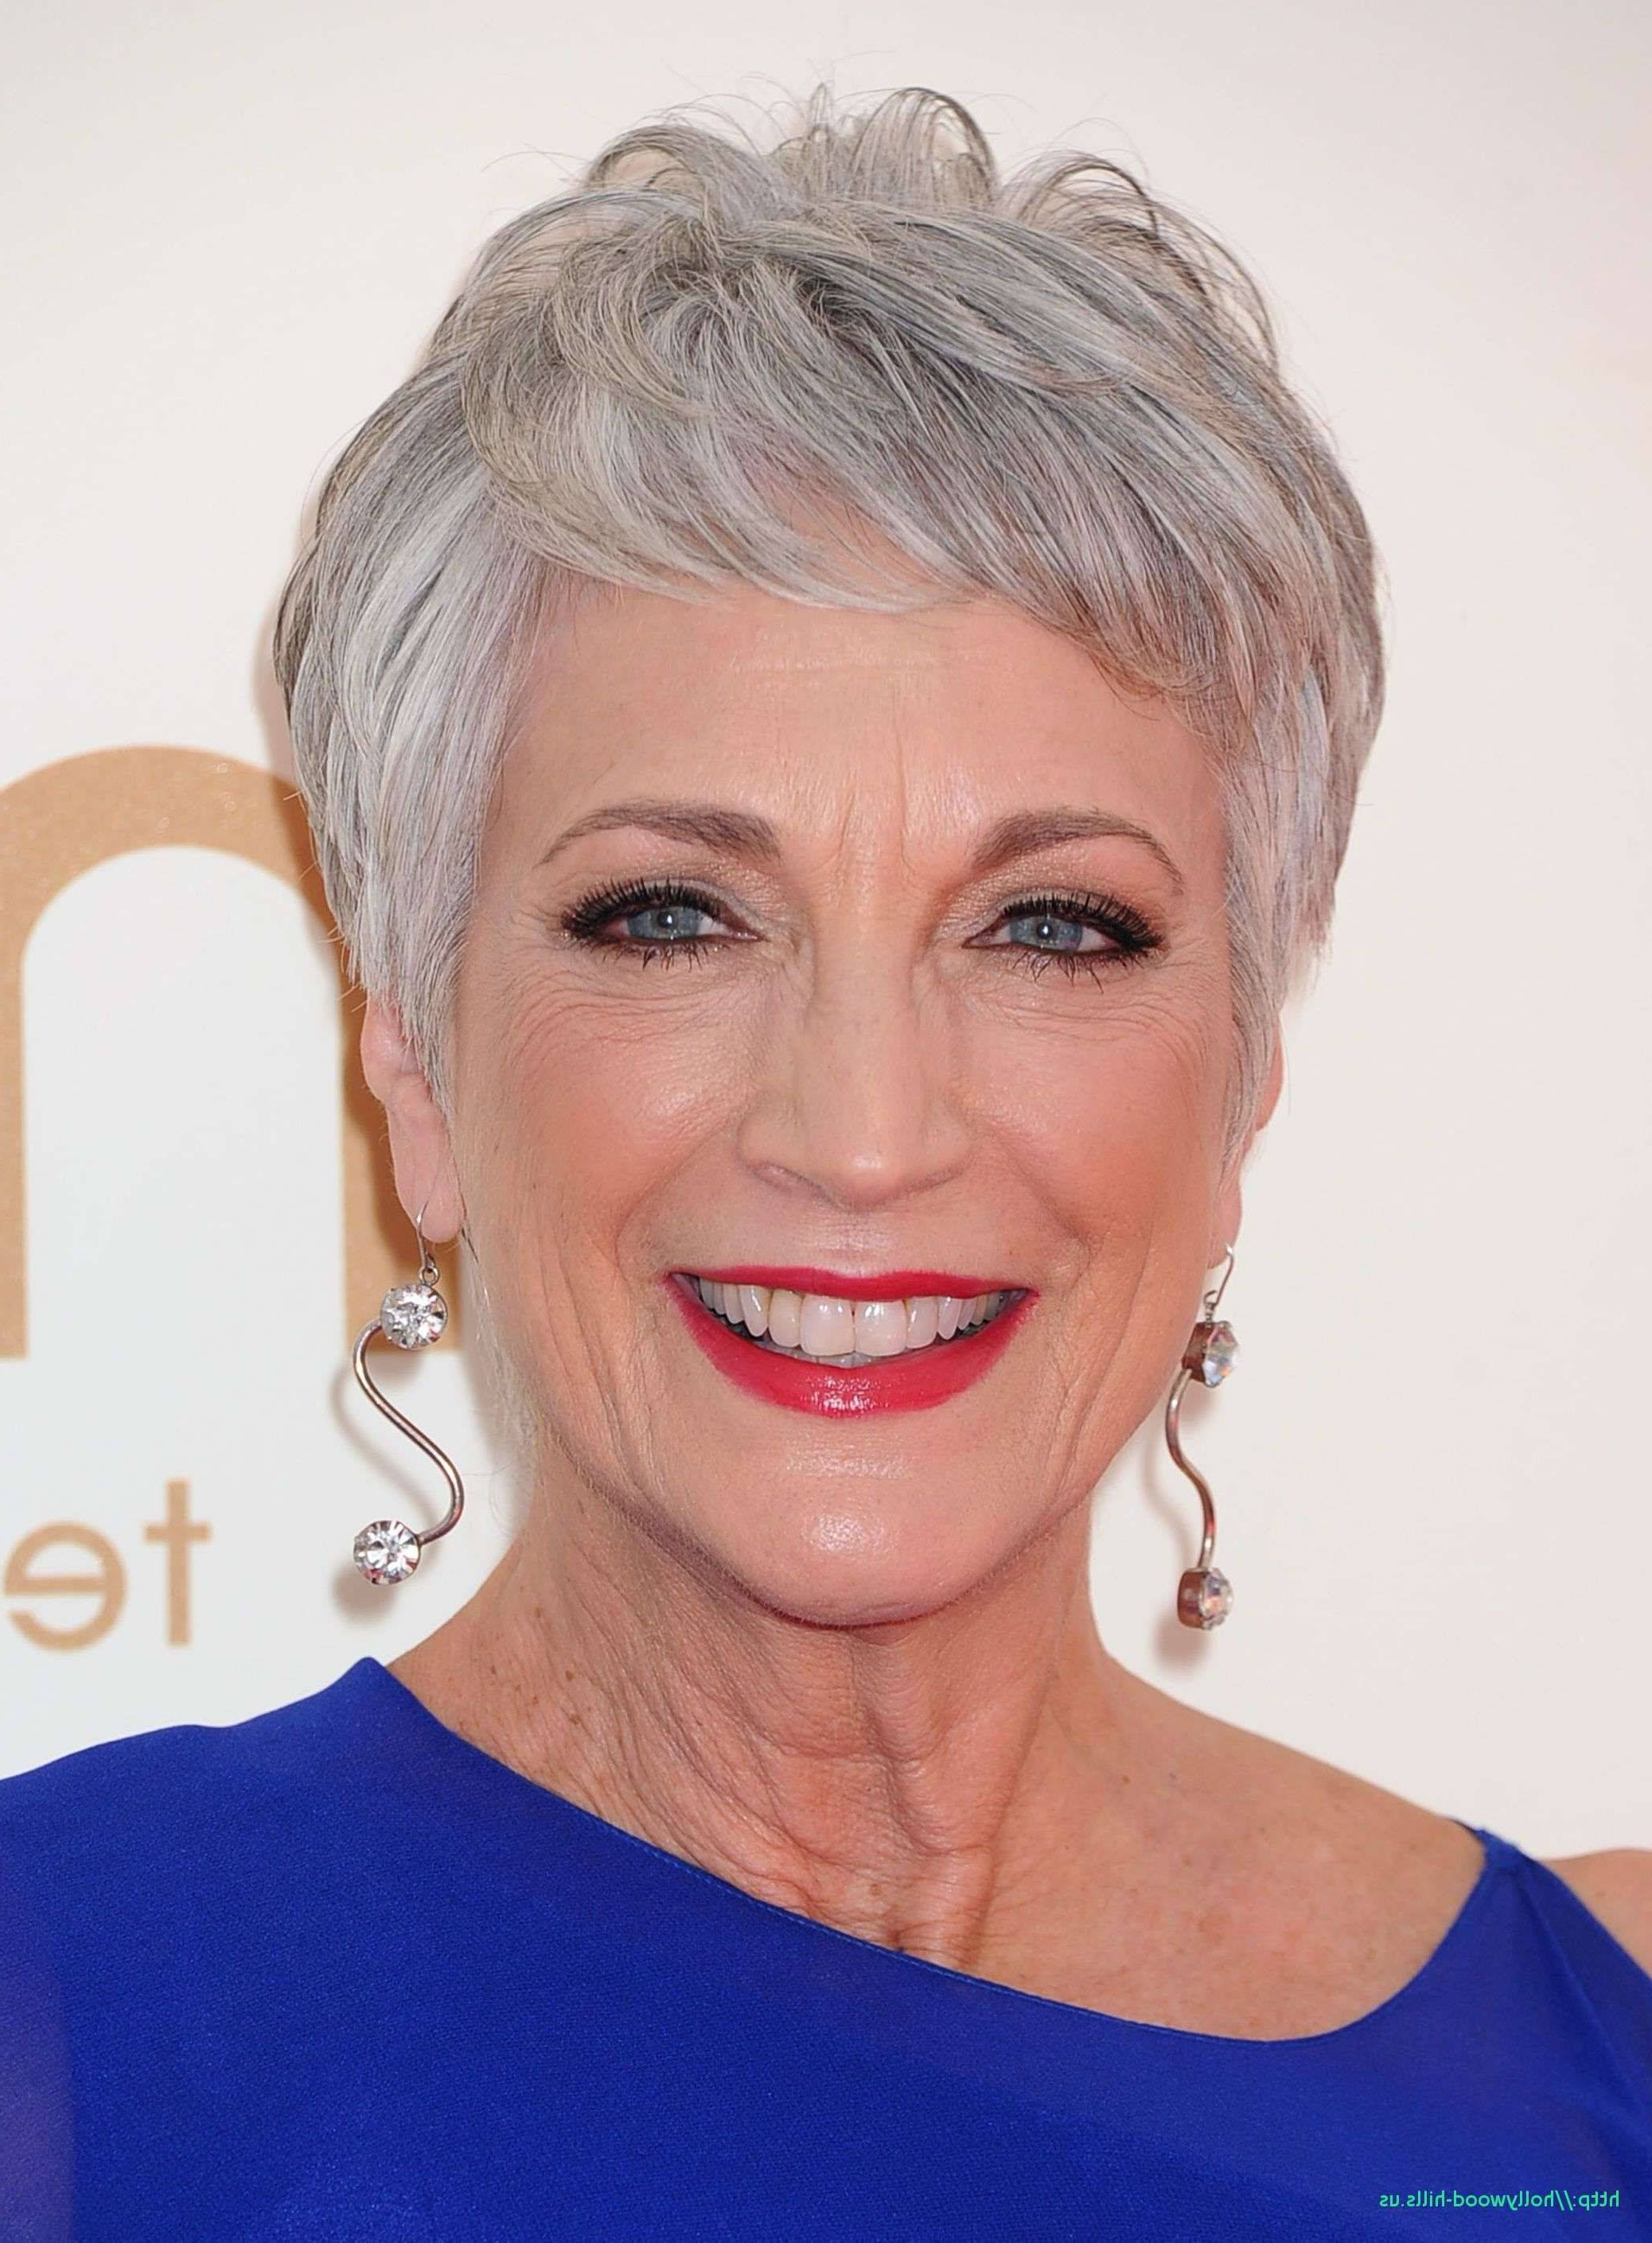 Medium Hairstyles For Long Faces Over 50 Beautiful Hairstyles For Pertaining To 2018 Medium Hairstyles For Women With Gray Hair (Gallery 18 of 20)